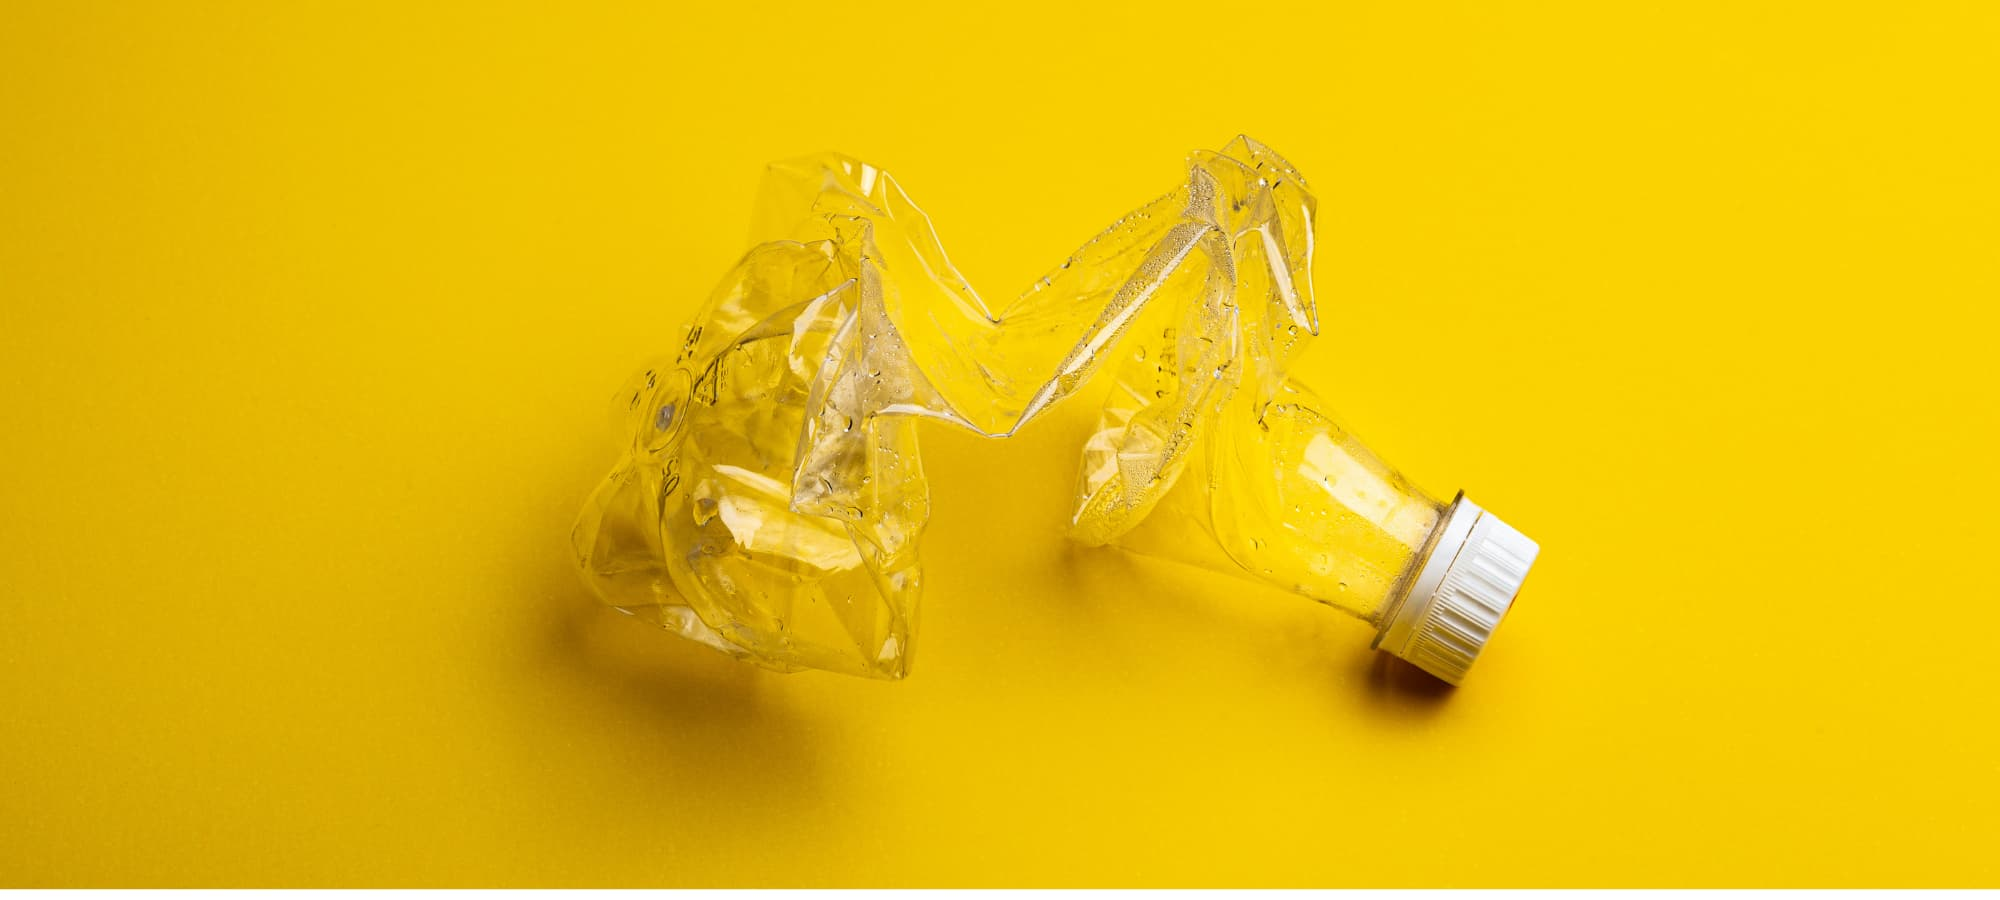 a crumbled plastic bottle against a yellow background